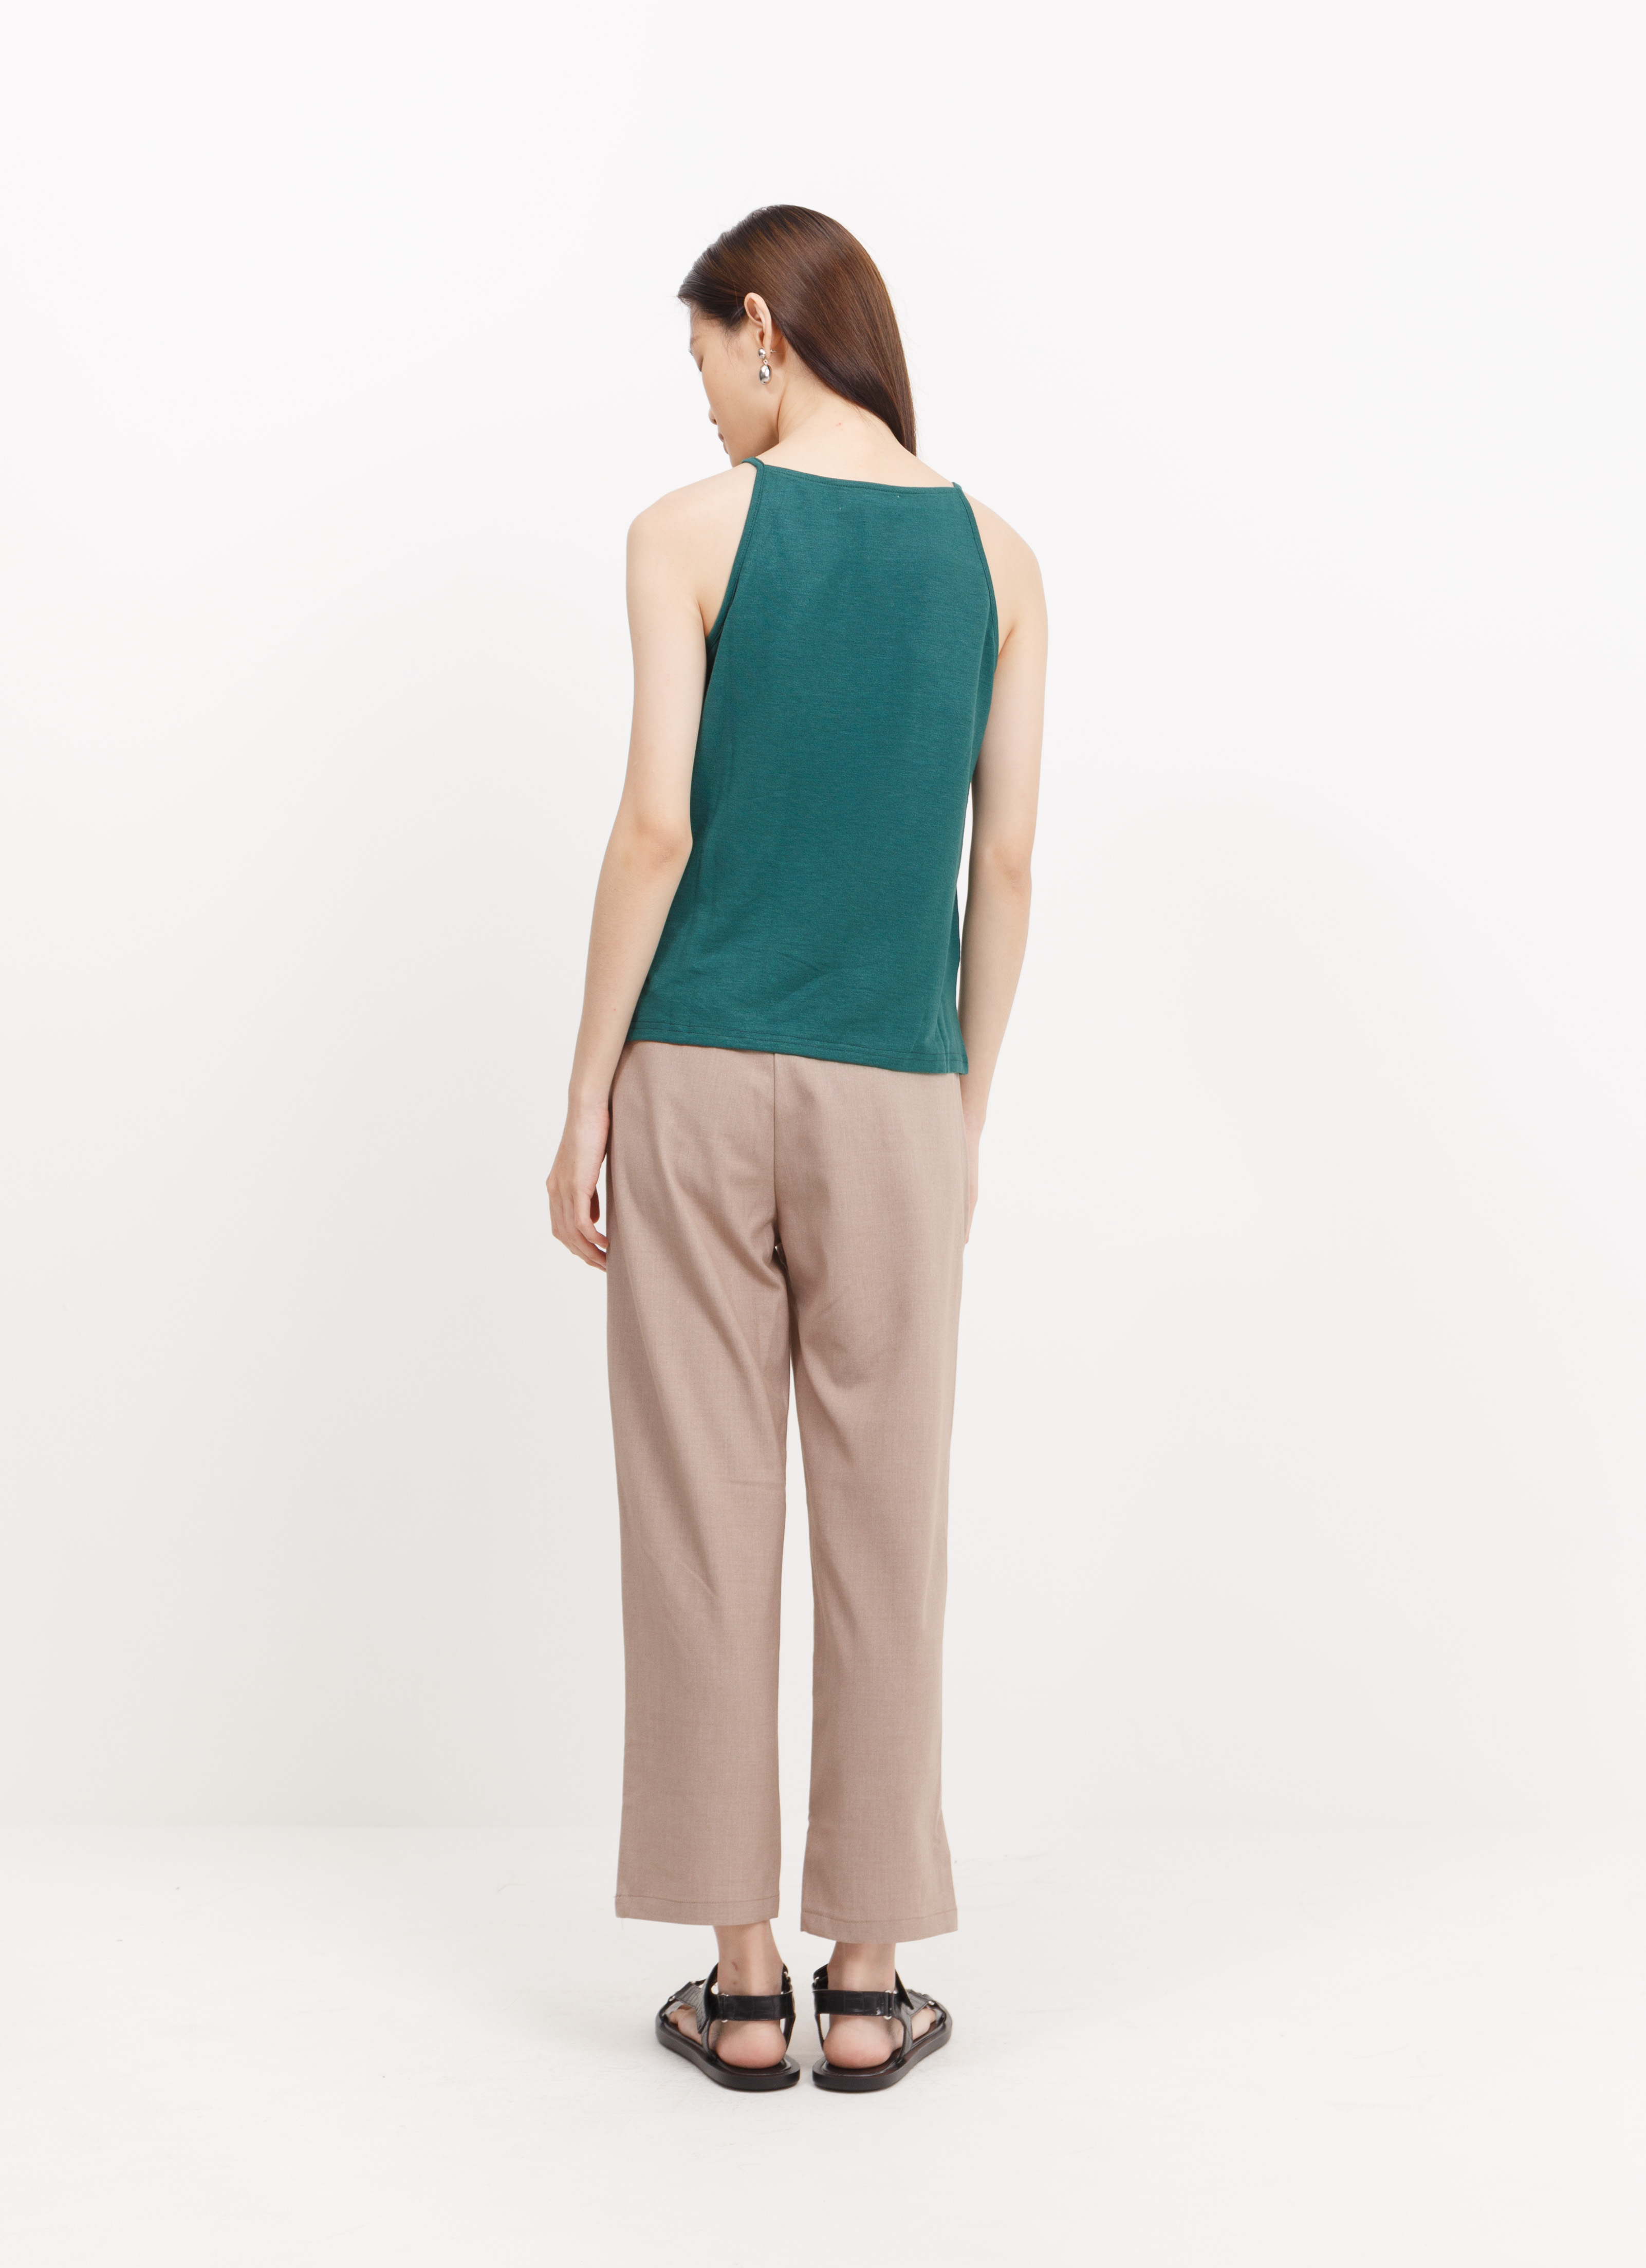 BOWN Cath Top - Green